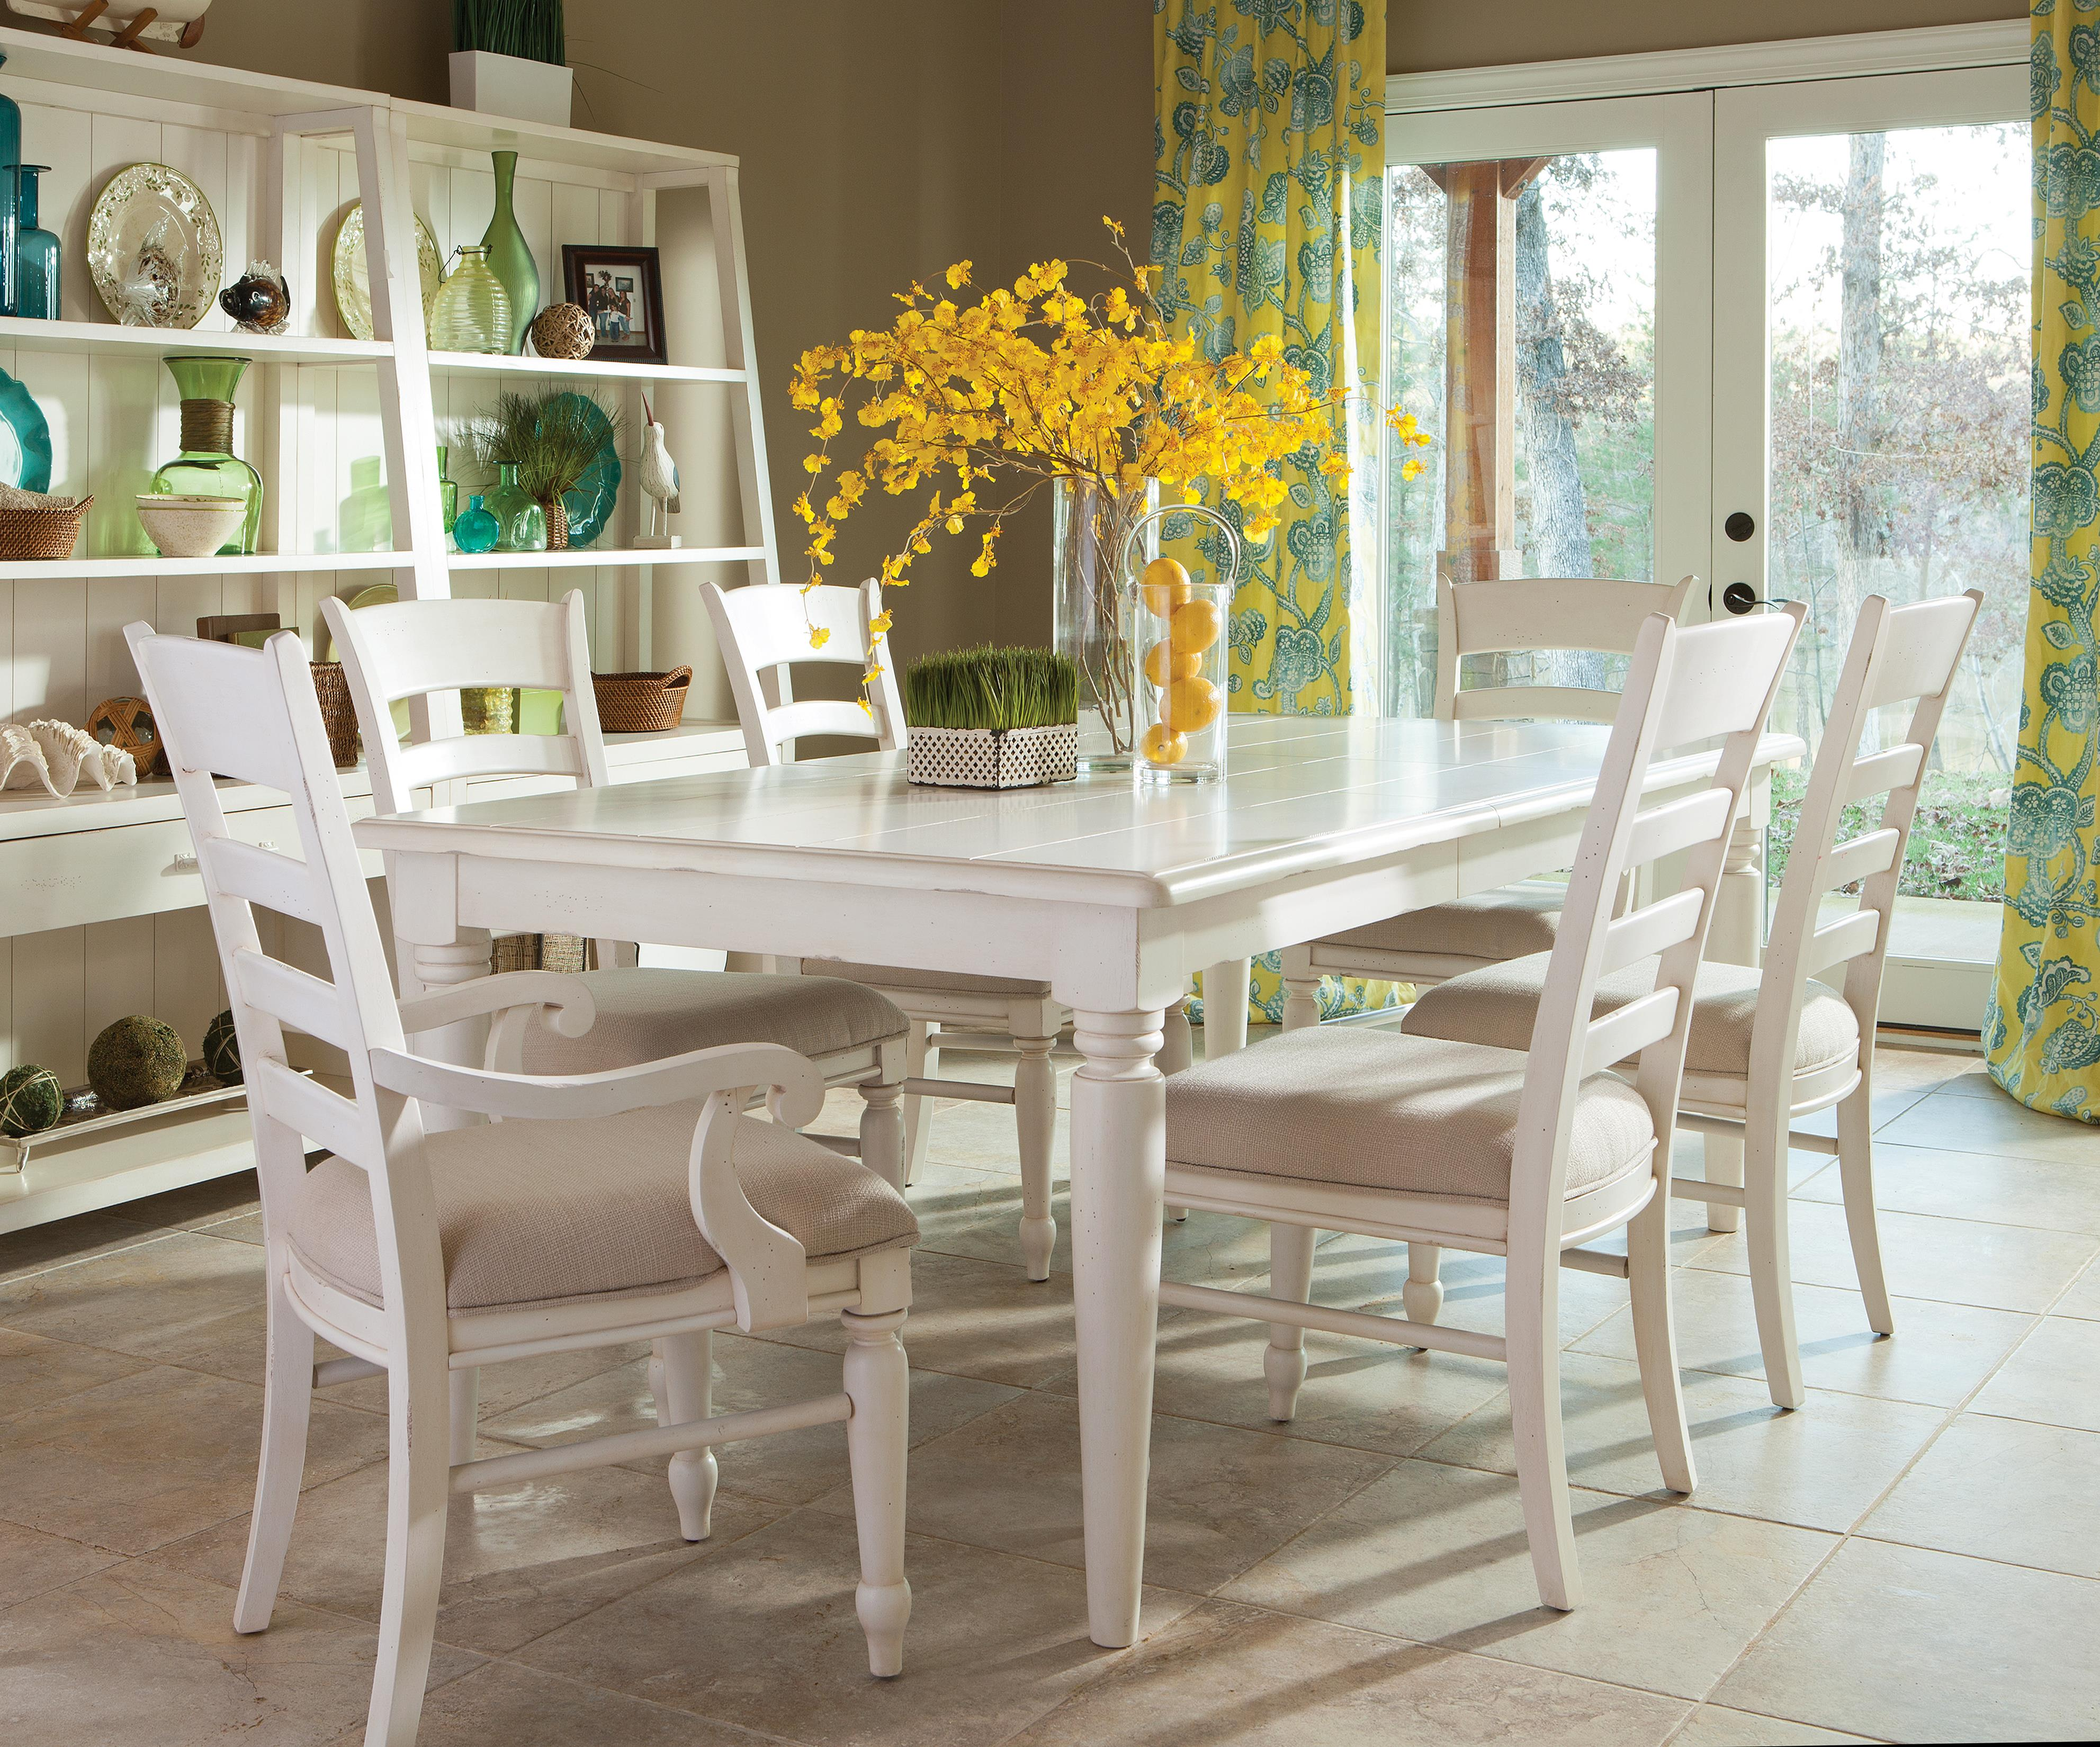 Easton Collection Sea Breeze Table and Chairs Set - Item Number: 424-084 DRT+2x906 DRC+4x901 DRC